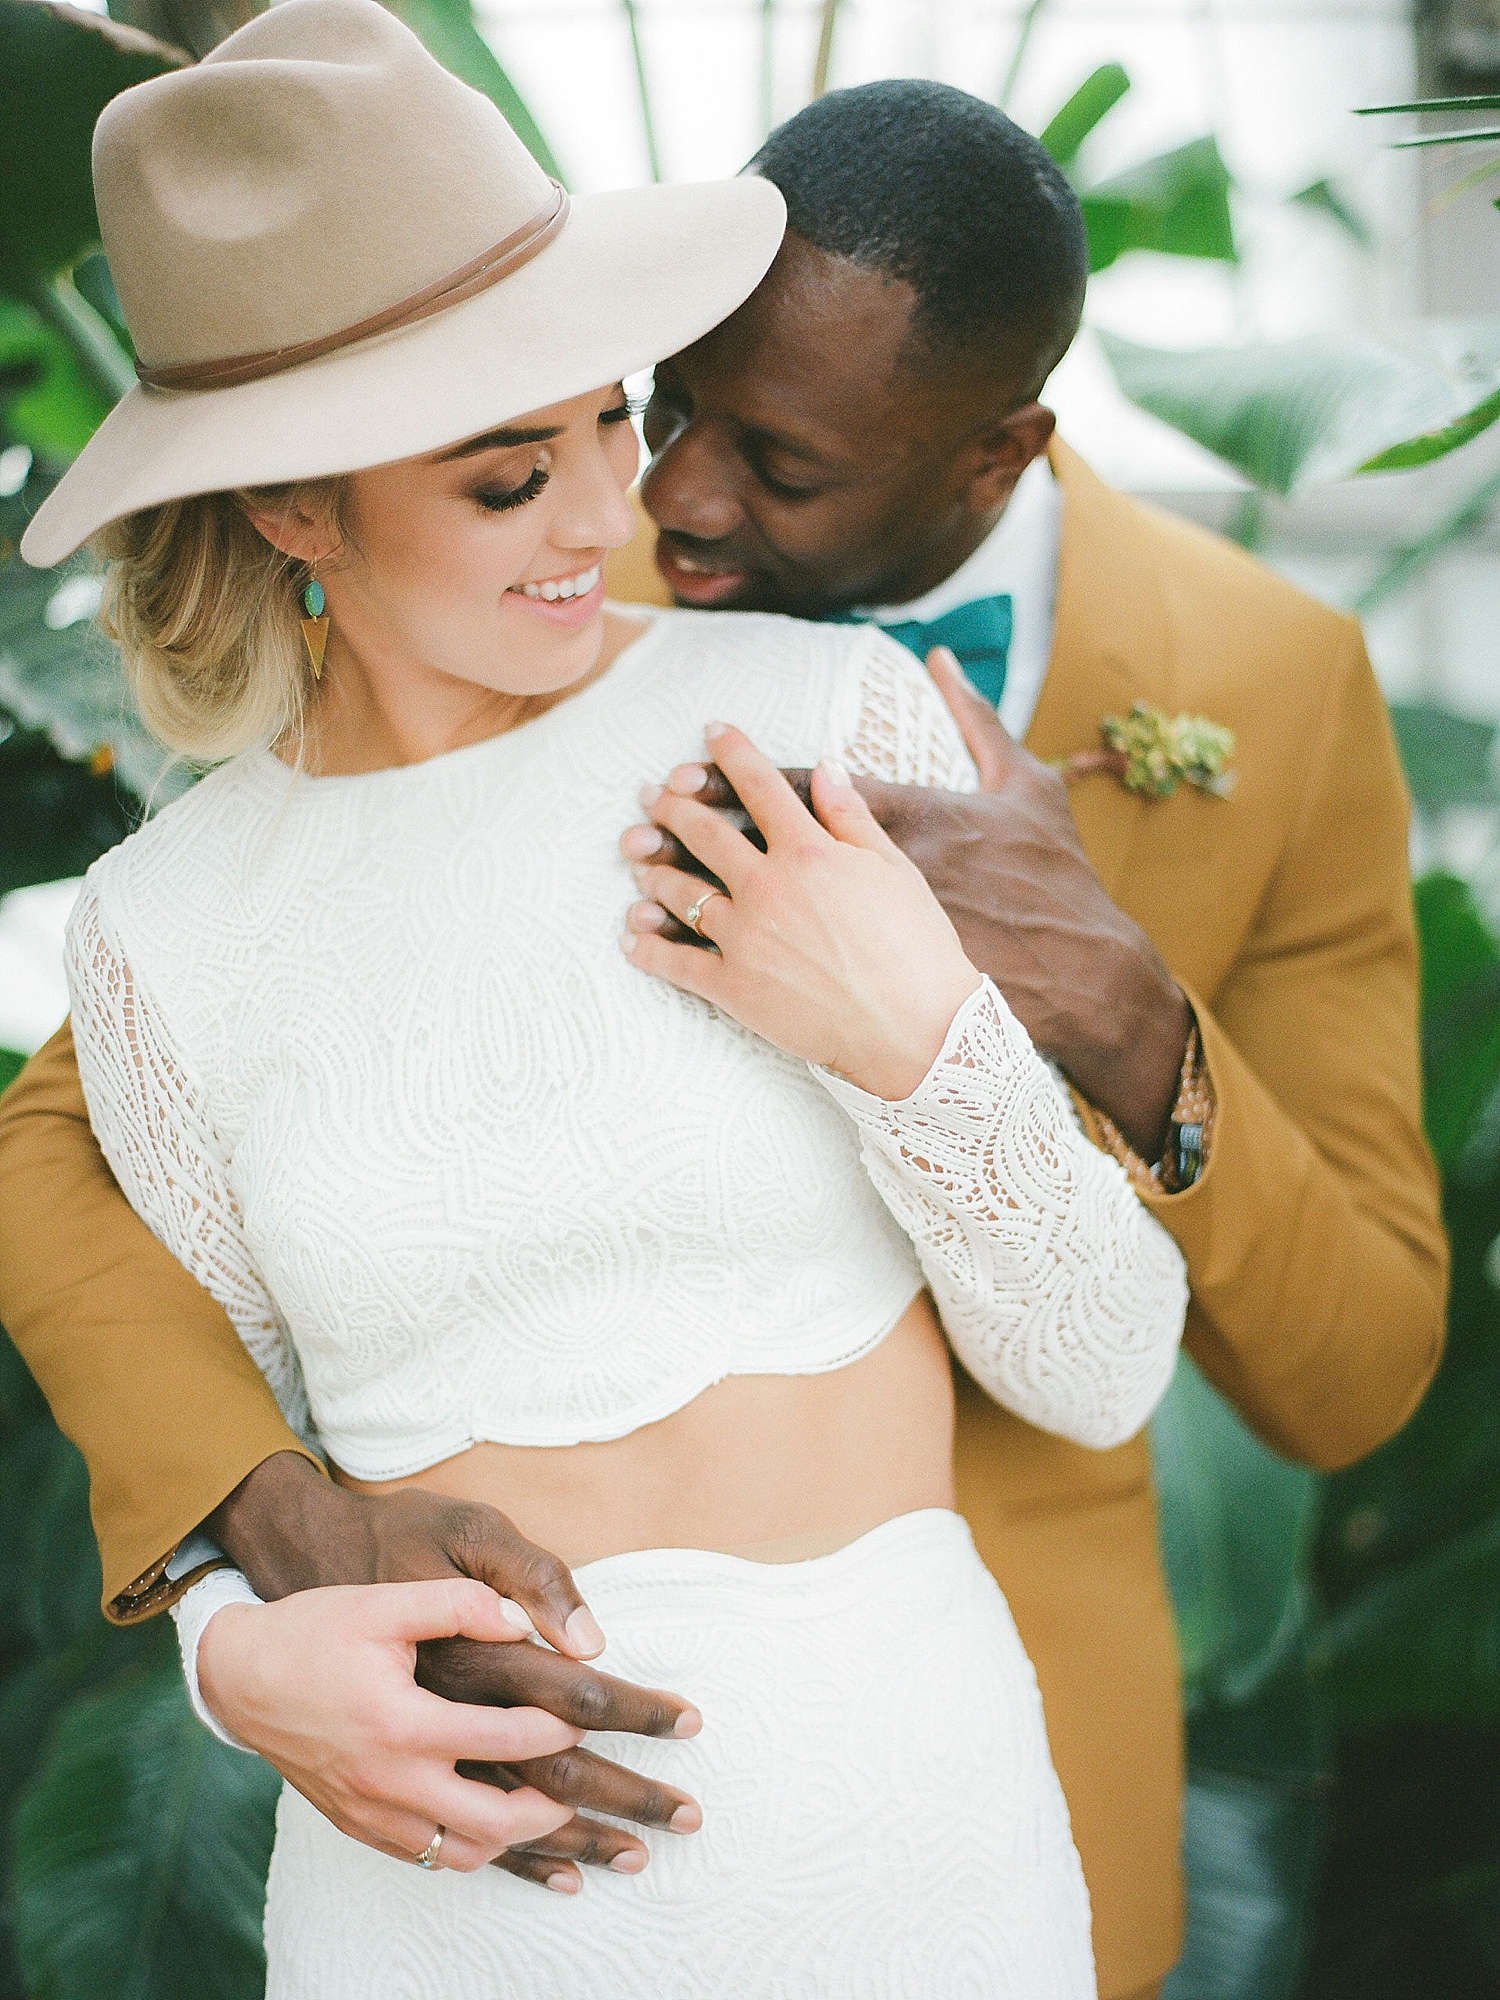 Colorful and Vibrant Wedding Photography at Fairmount Horticultural Center by Magdalena Studios 0047